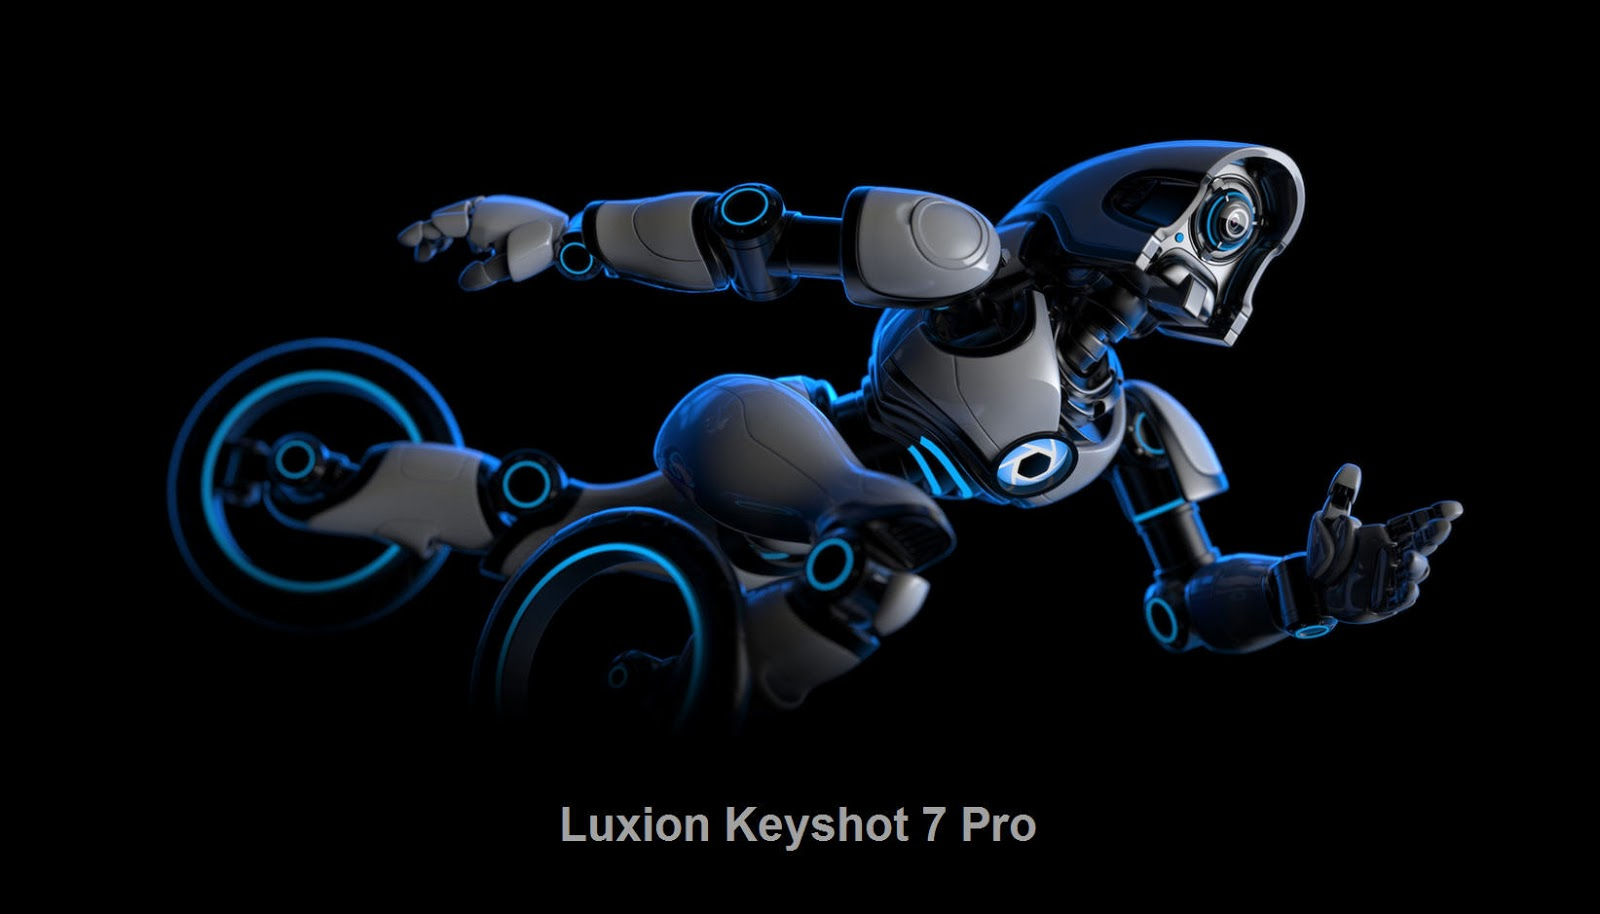 Luxion Keyshot 7 Pro | Computer Graphics Daily News